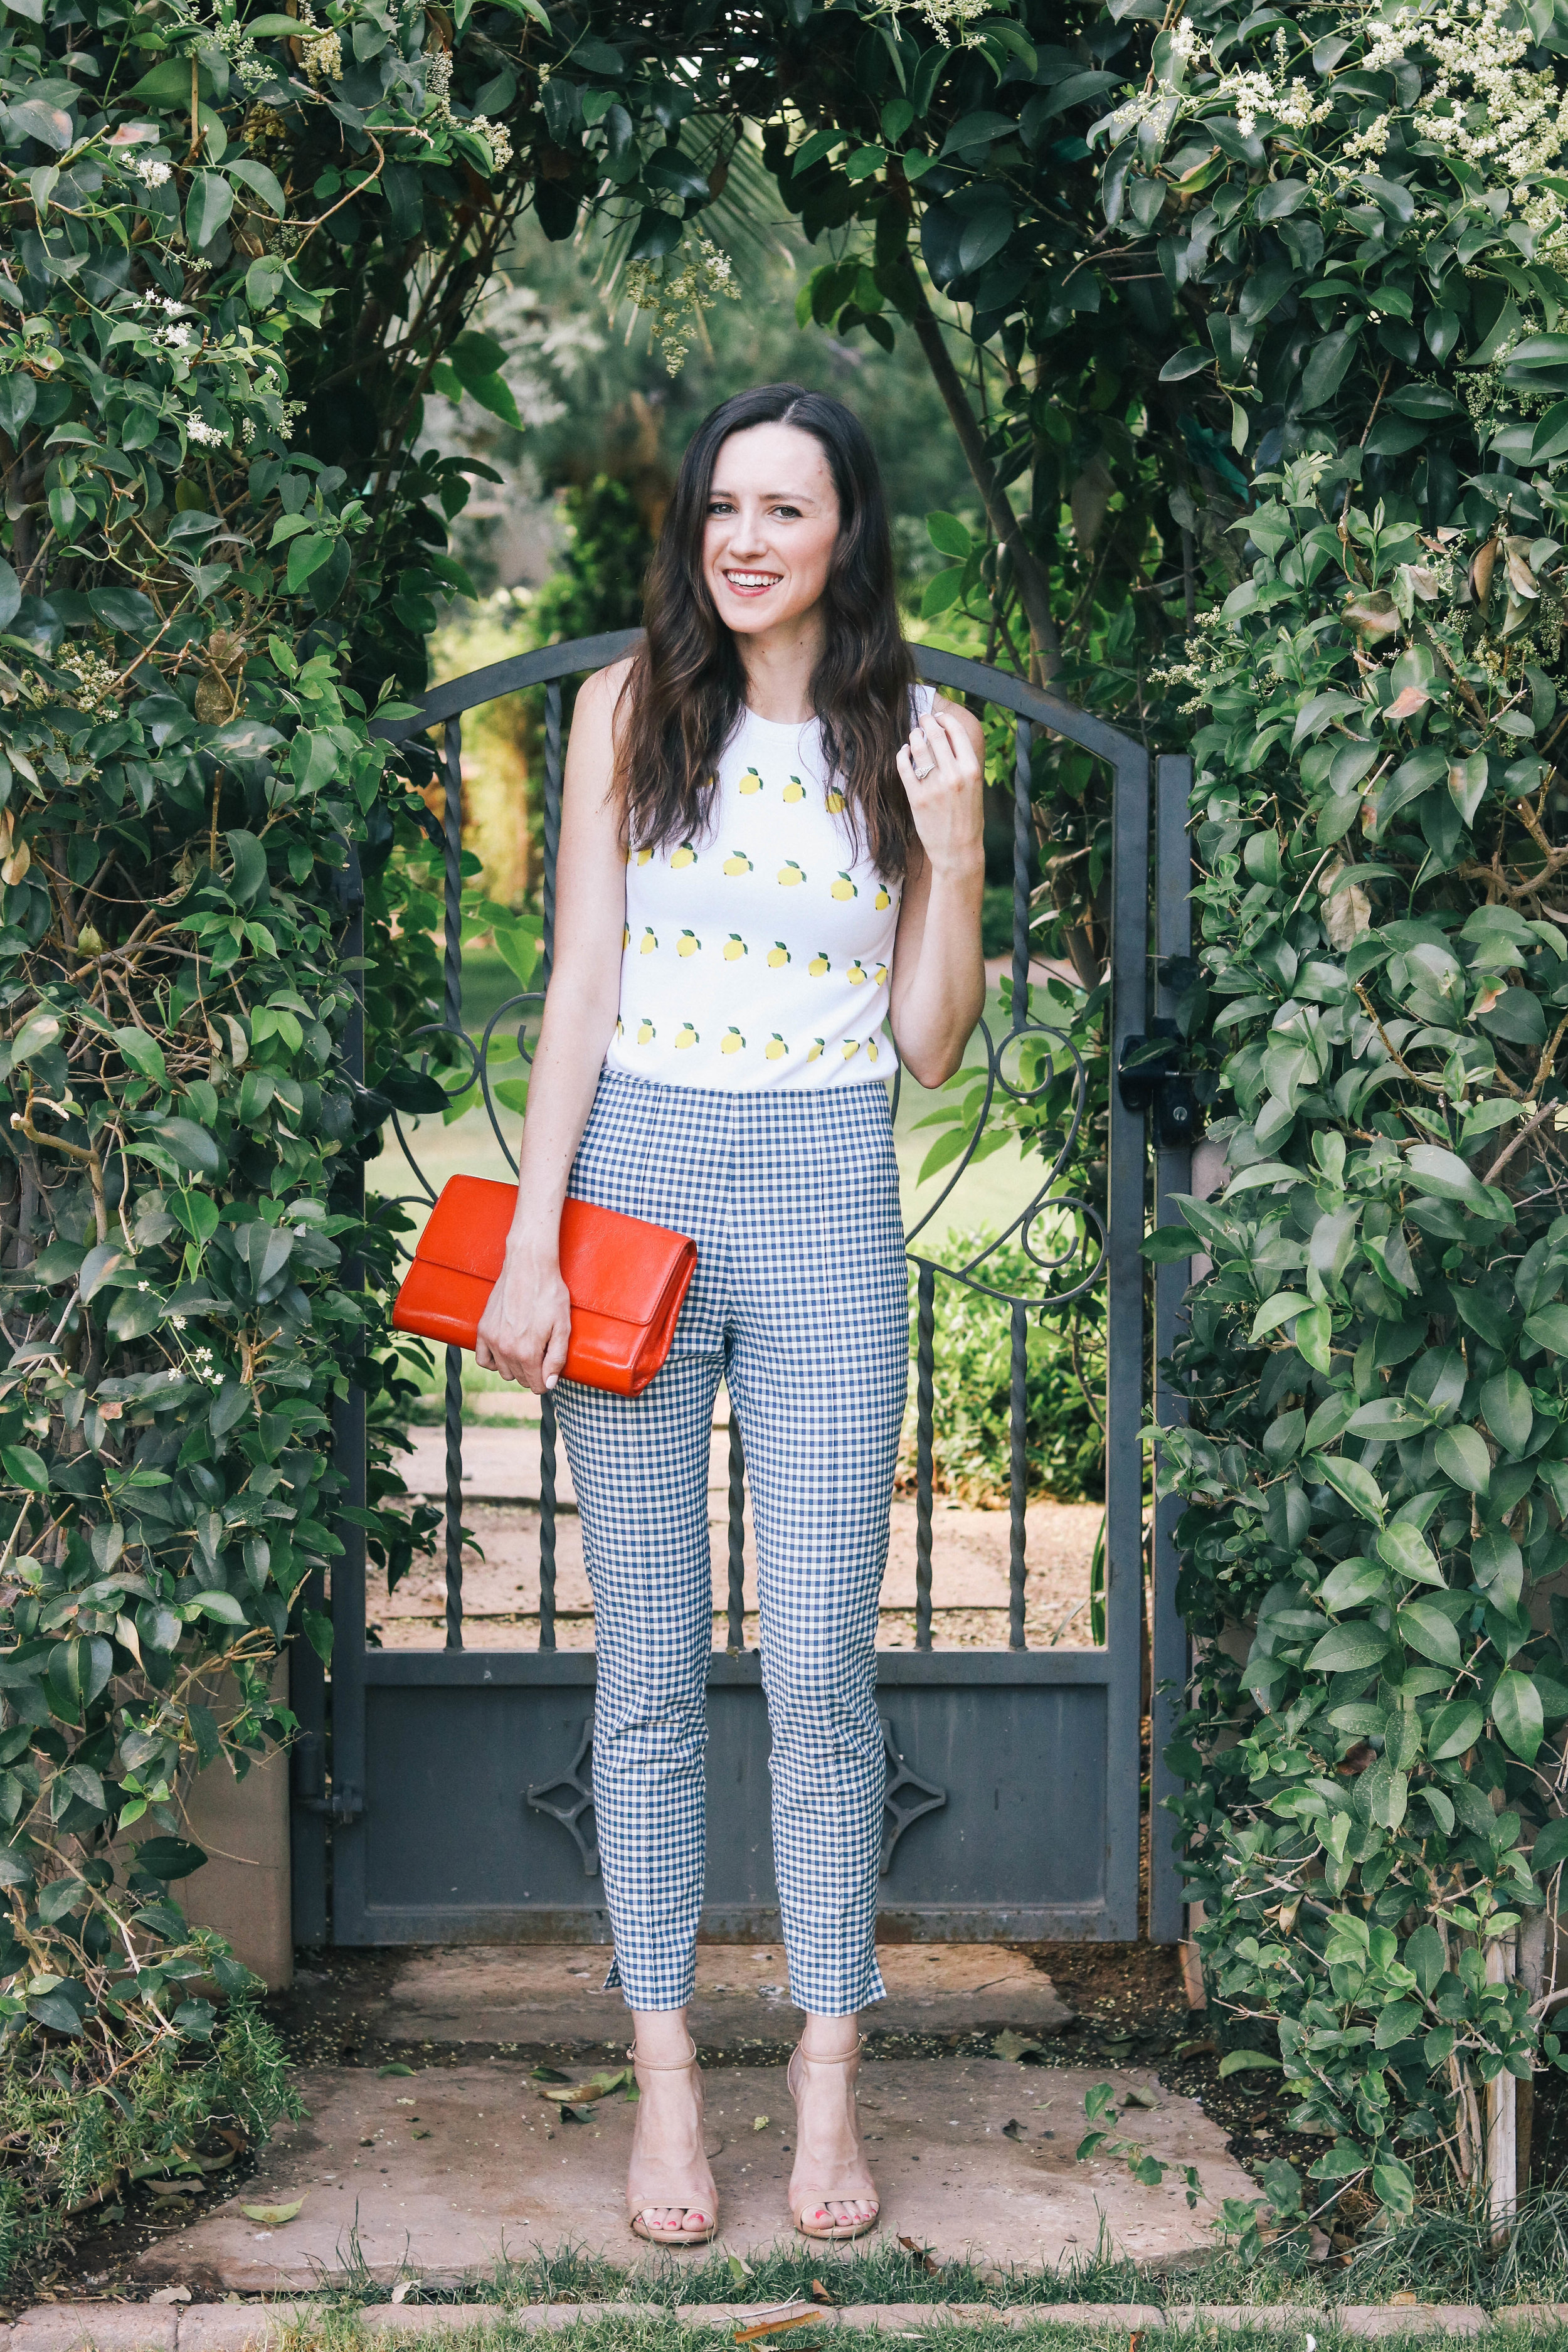 bb-summer-outfit-006 (1 of 1).jpg